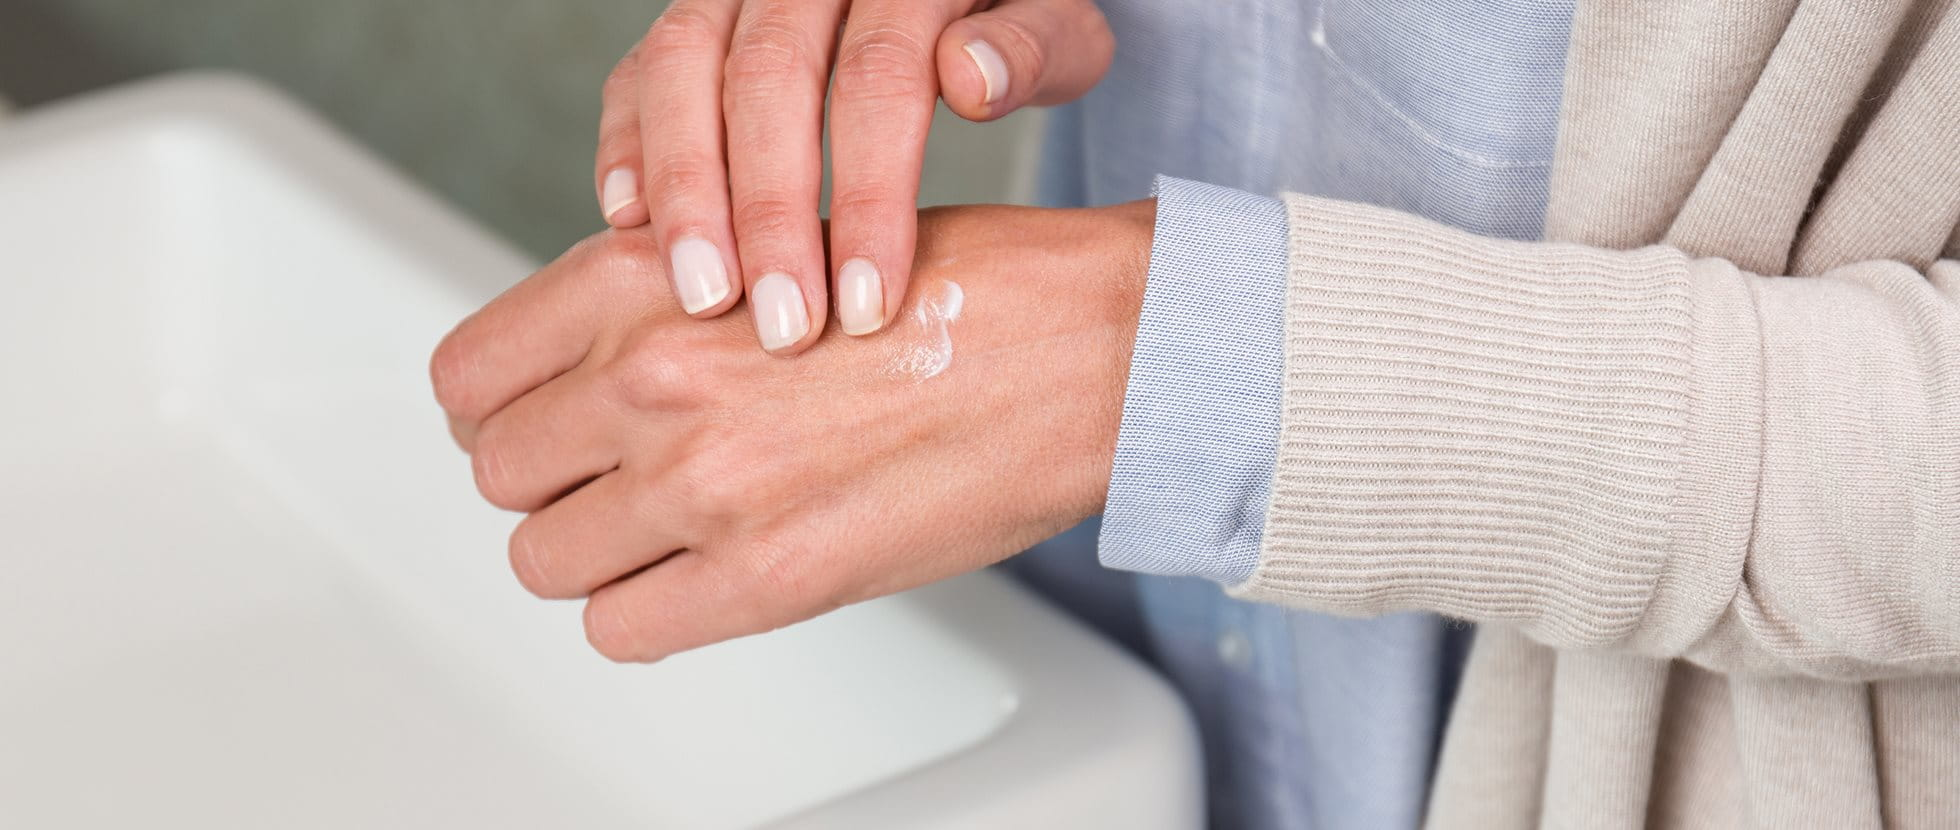 What prevents dry skin on the hands?